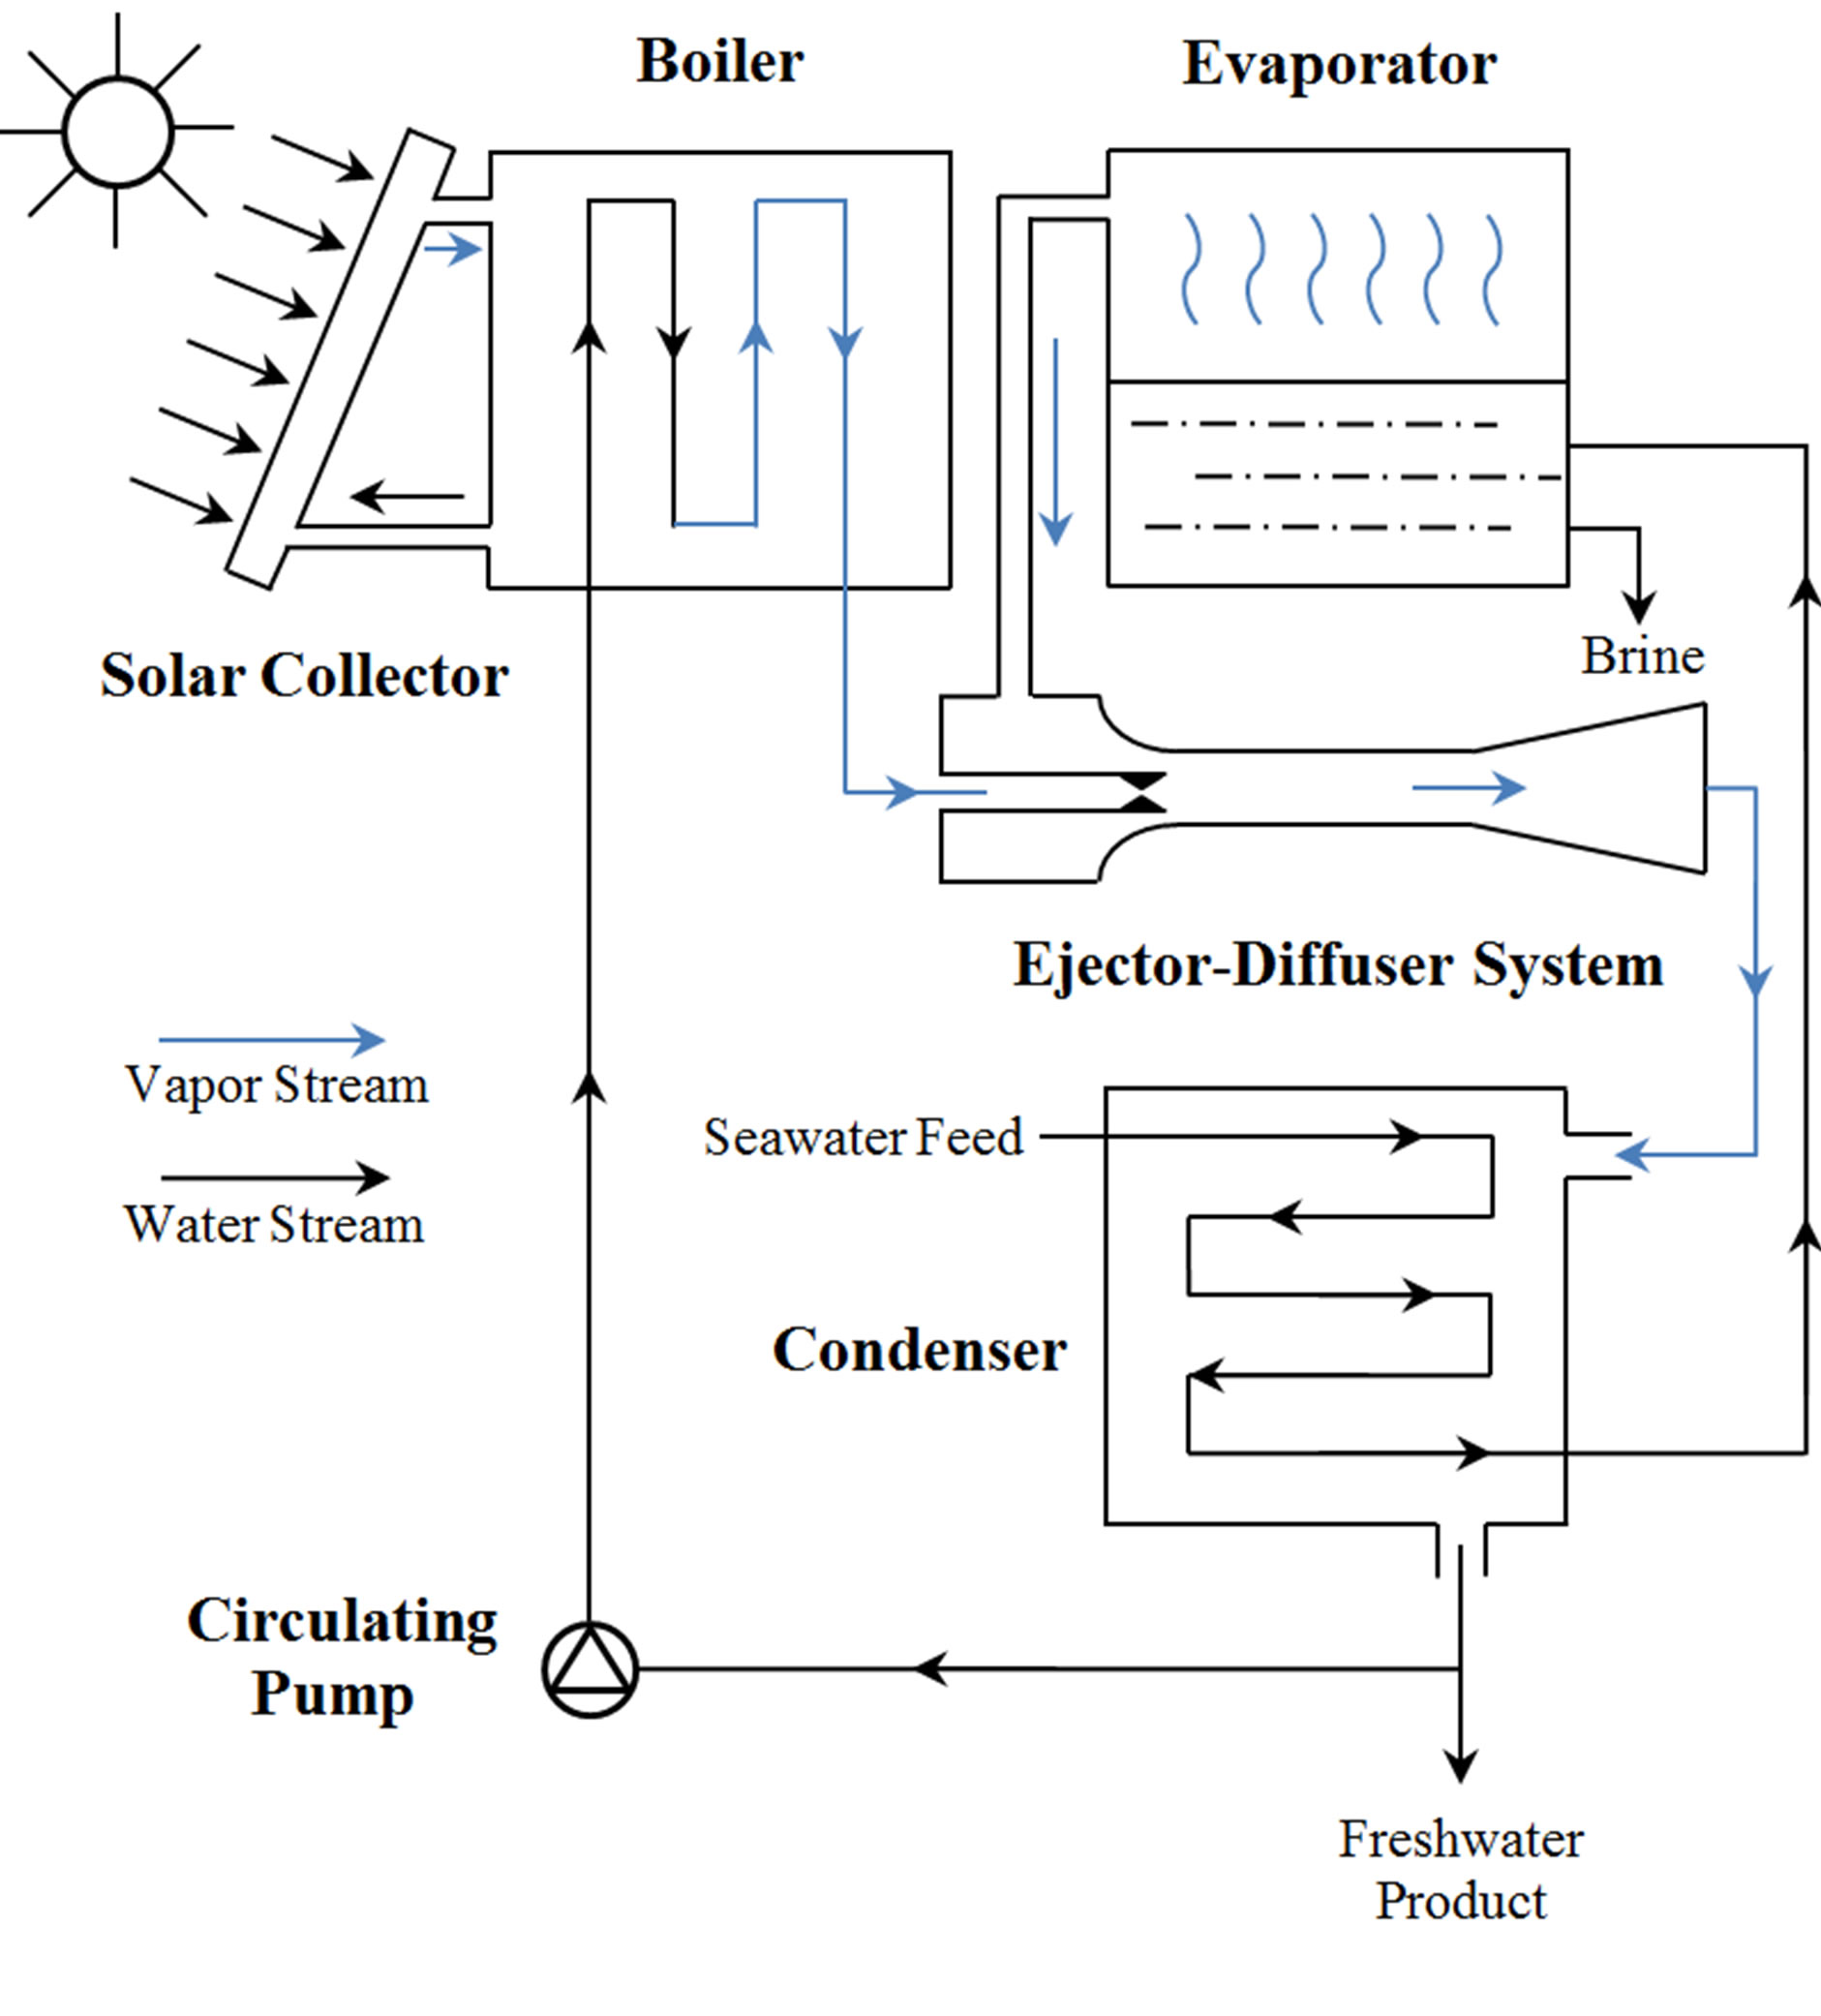 Computational analysis of mixing guide vane effects on performance the supersonic ejector diffuser system in a solar desalination circulation ref 21 pooptronica Image collections